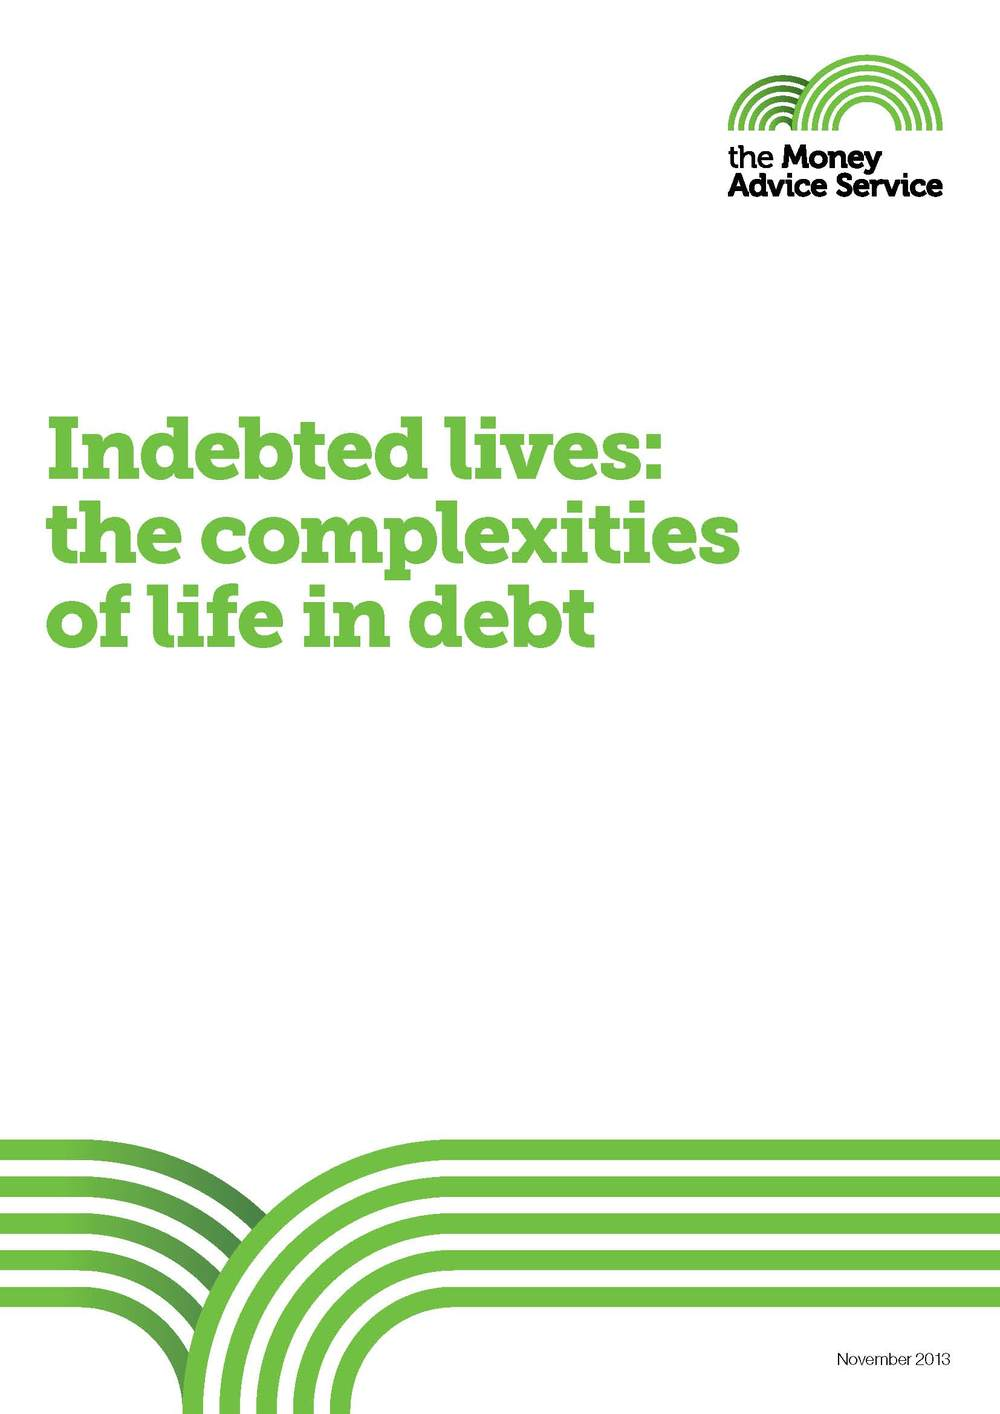 Indebted lives: The complexities of life in debt The Money Advice Service Download PDF (5.1Mb)